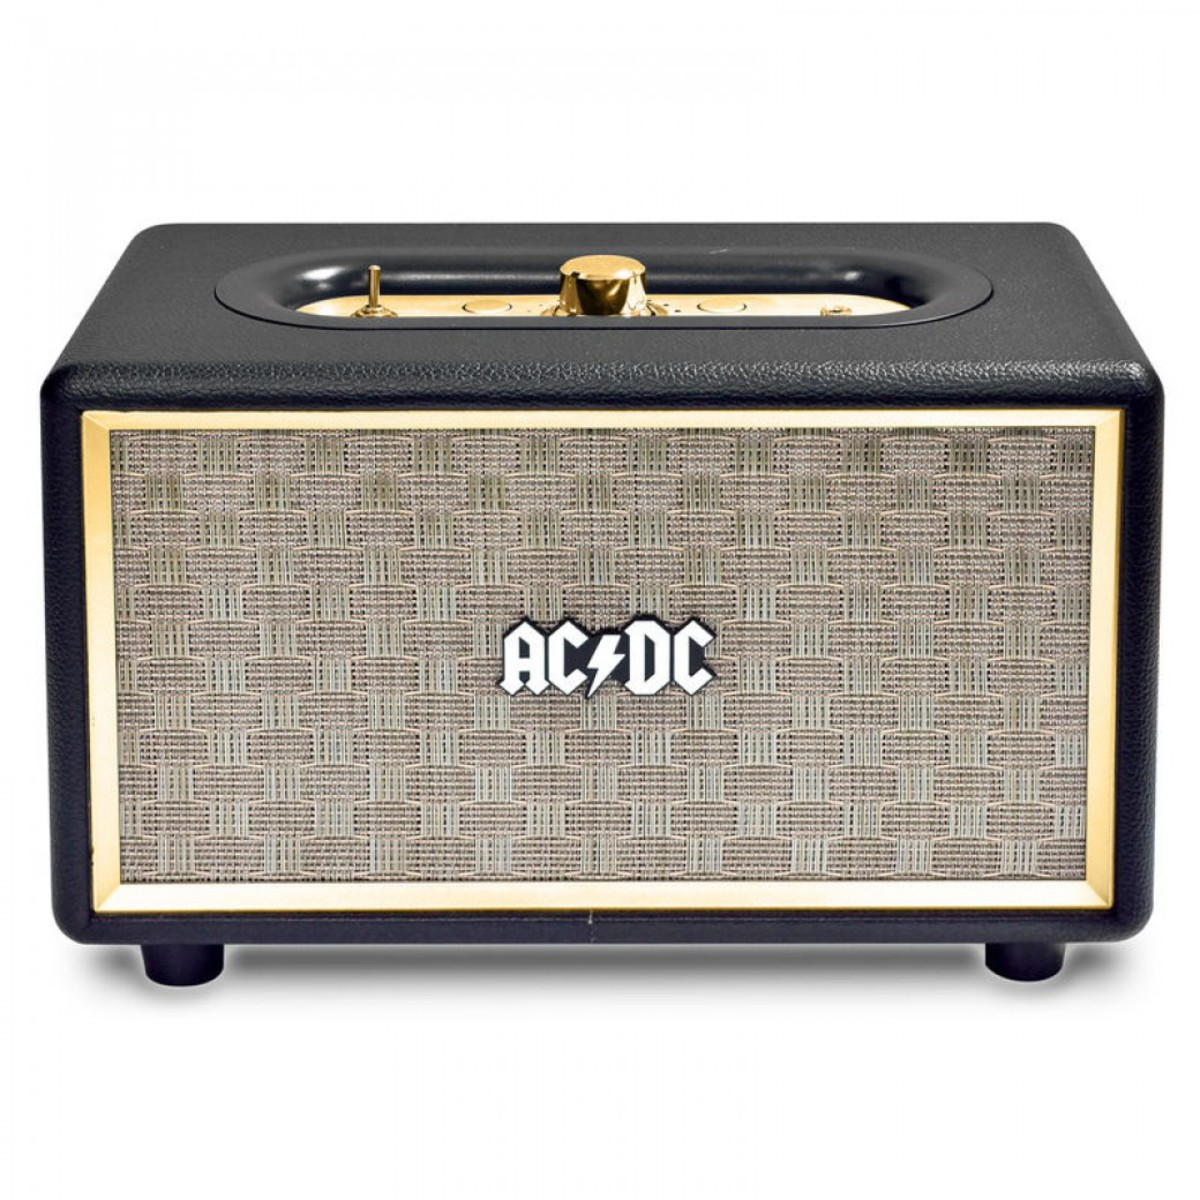 reproduktor ACDC - CLASSIC CL2 VINTAGE PORTABLE BLUETOOTH SPEAKER - BLACK - ACDCL2